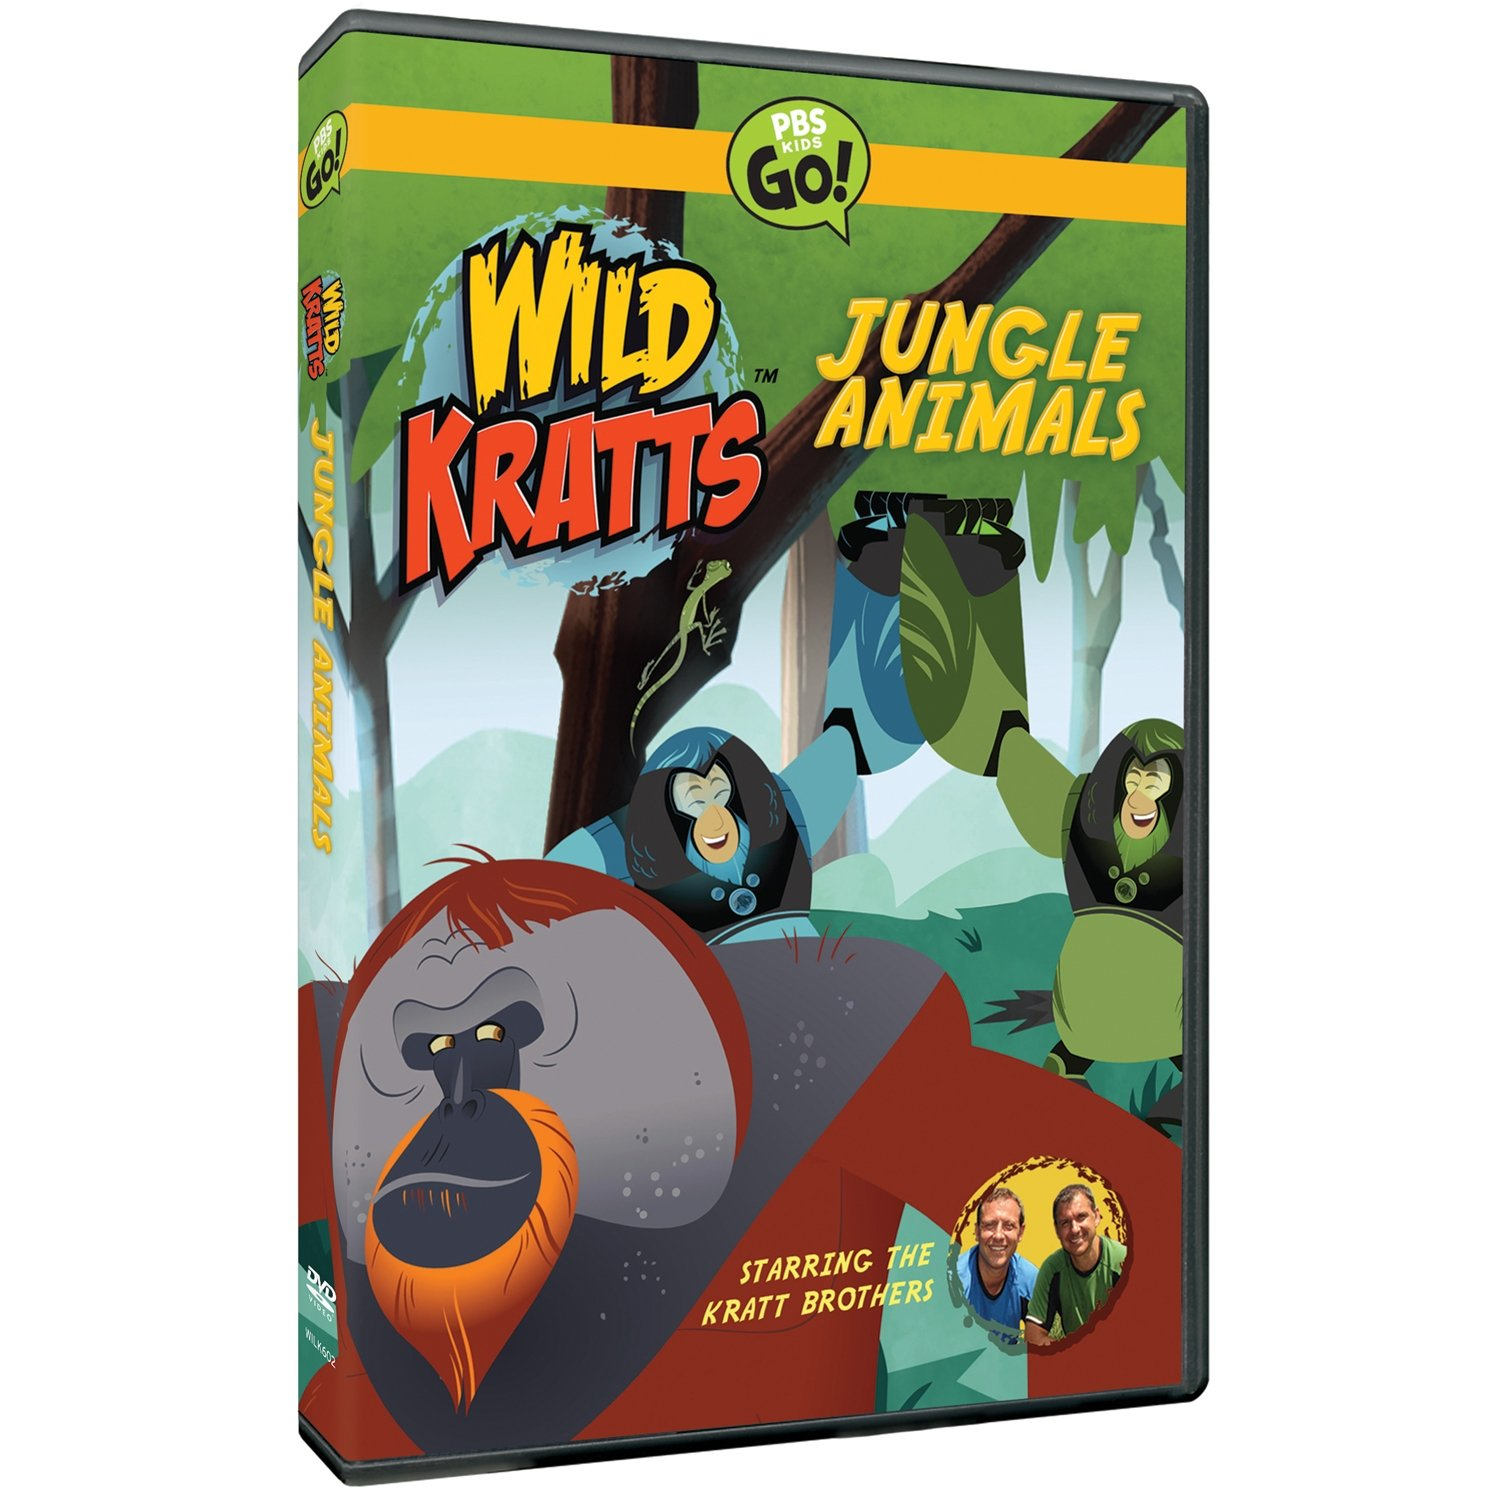 Selling Wild Kratts: Jungle Animals In stock